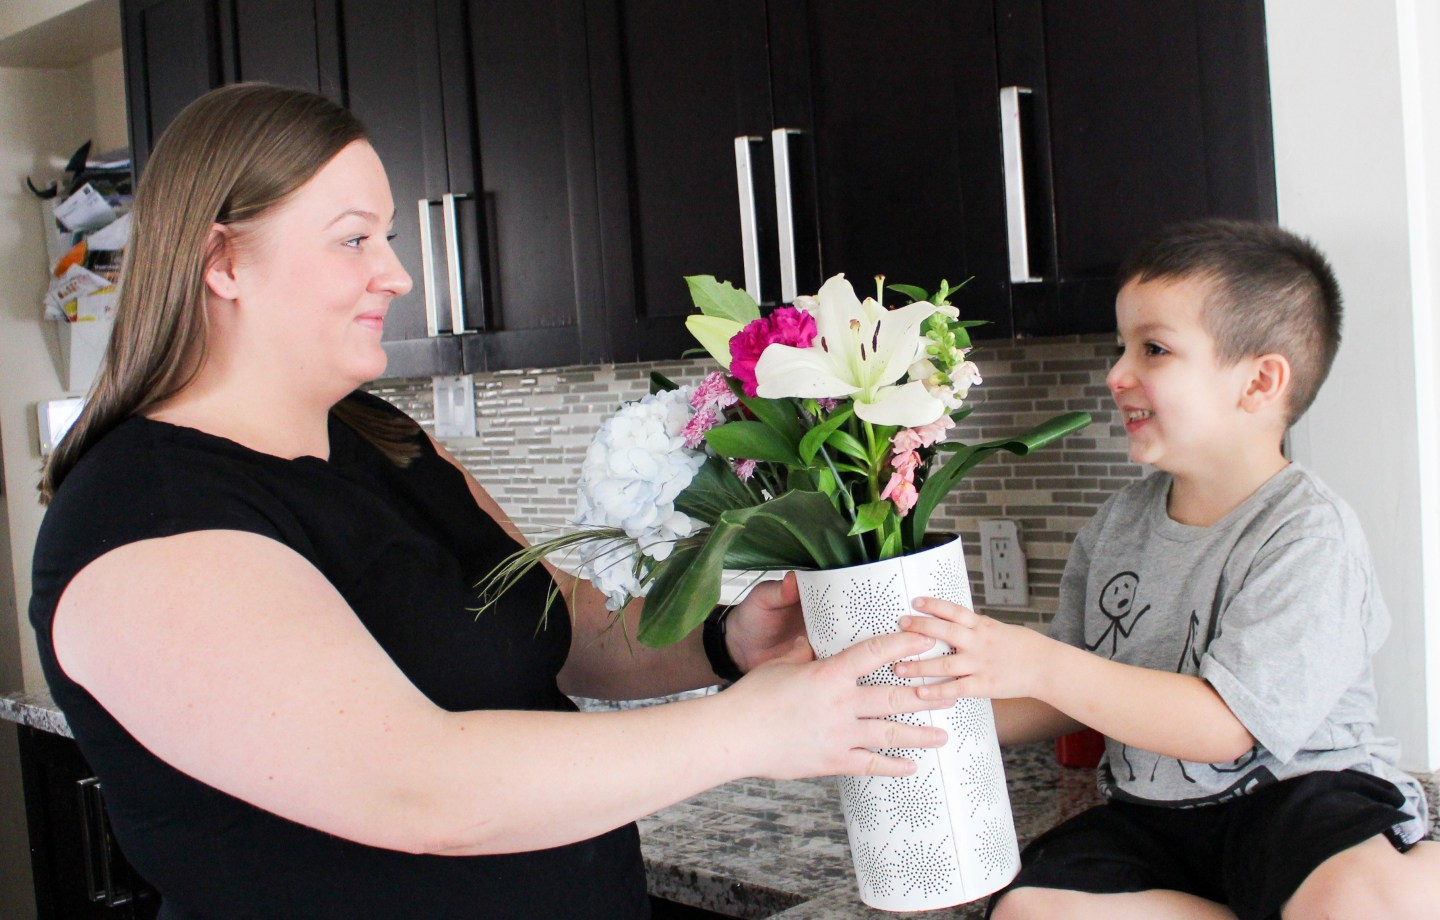 My Perfect Mother's Day as a PC Insiders™ Member